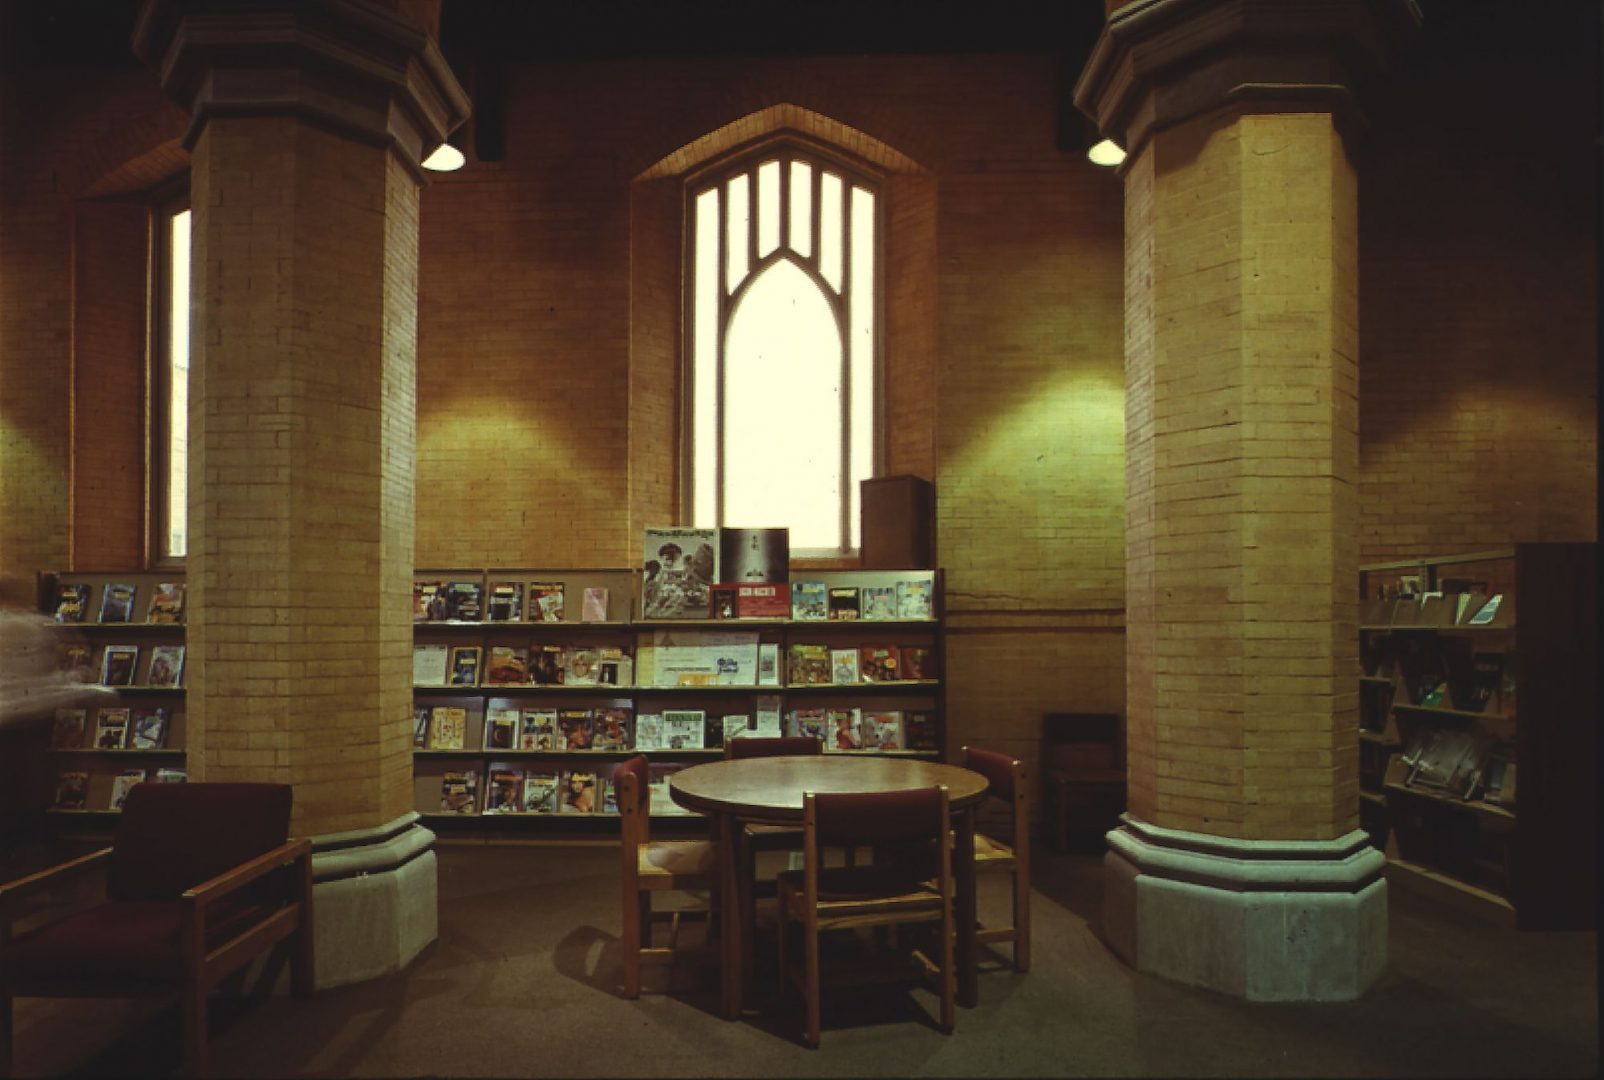 Cohoes Library 3